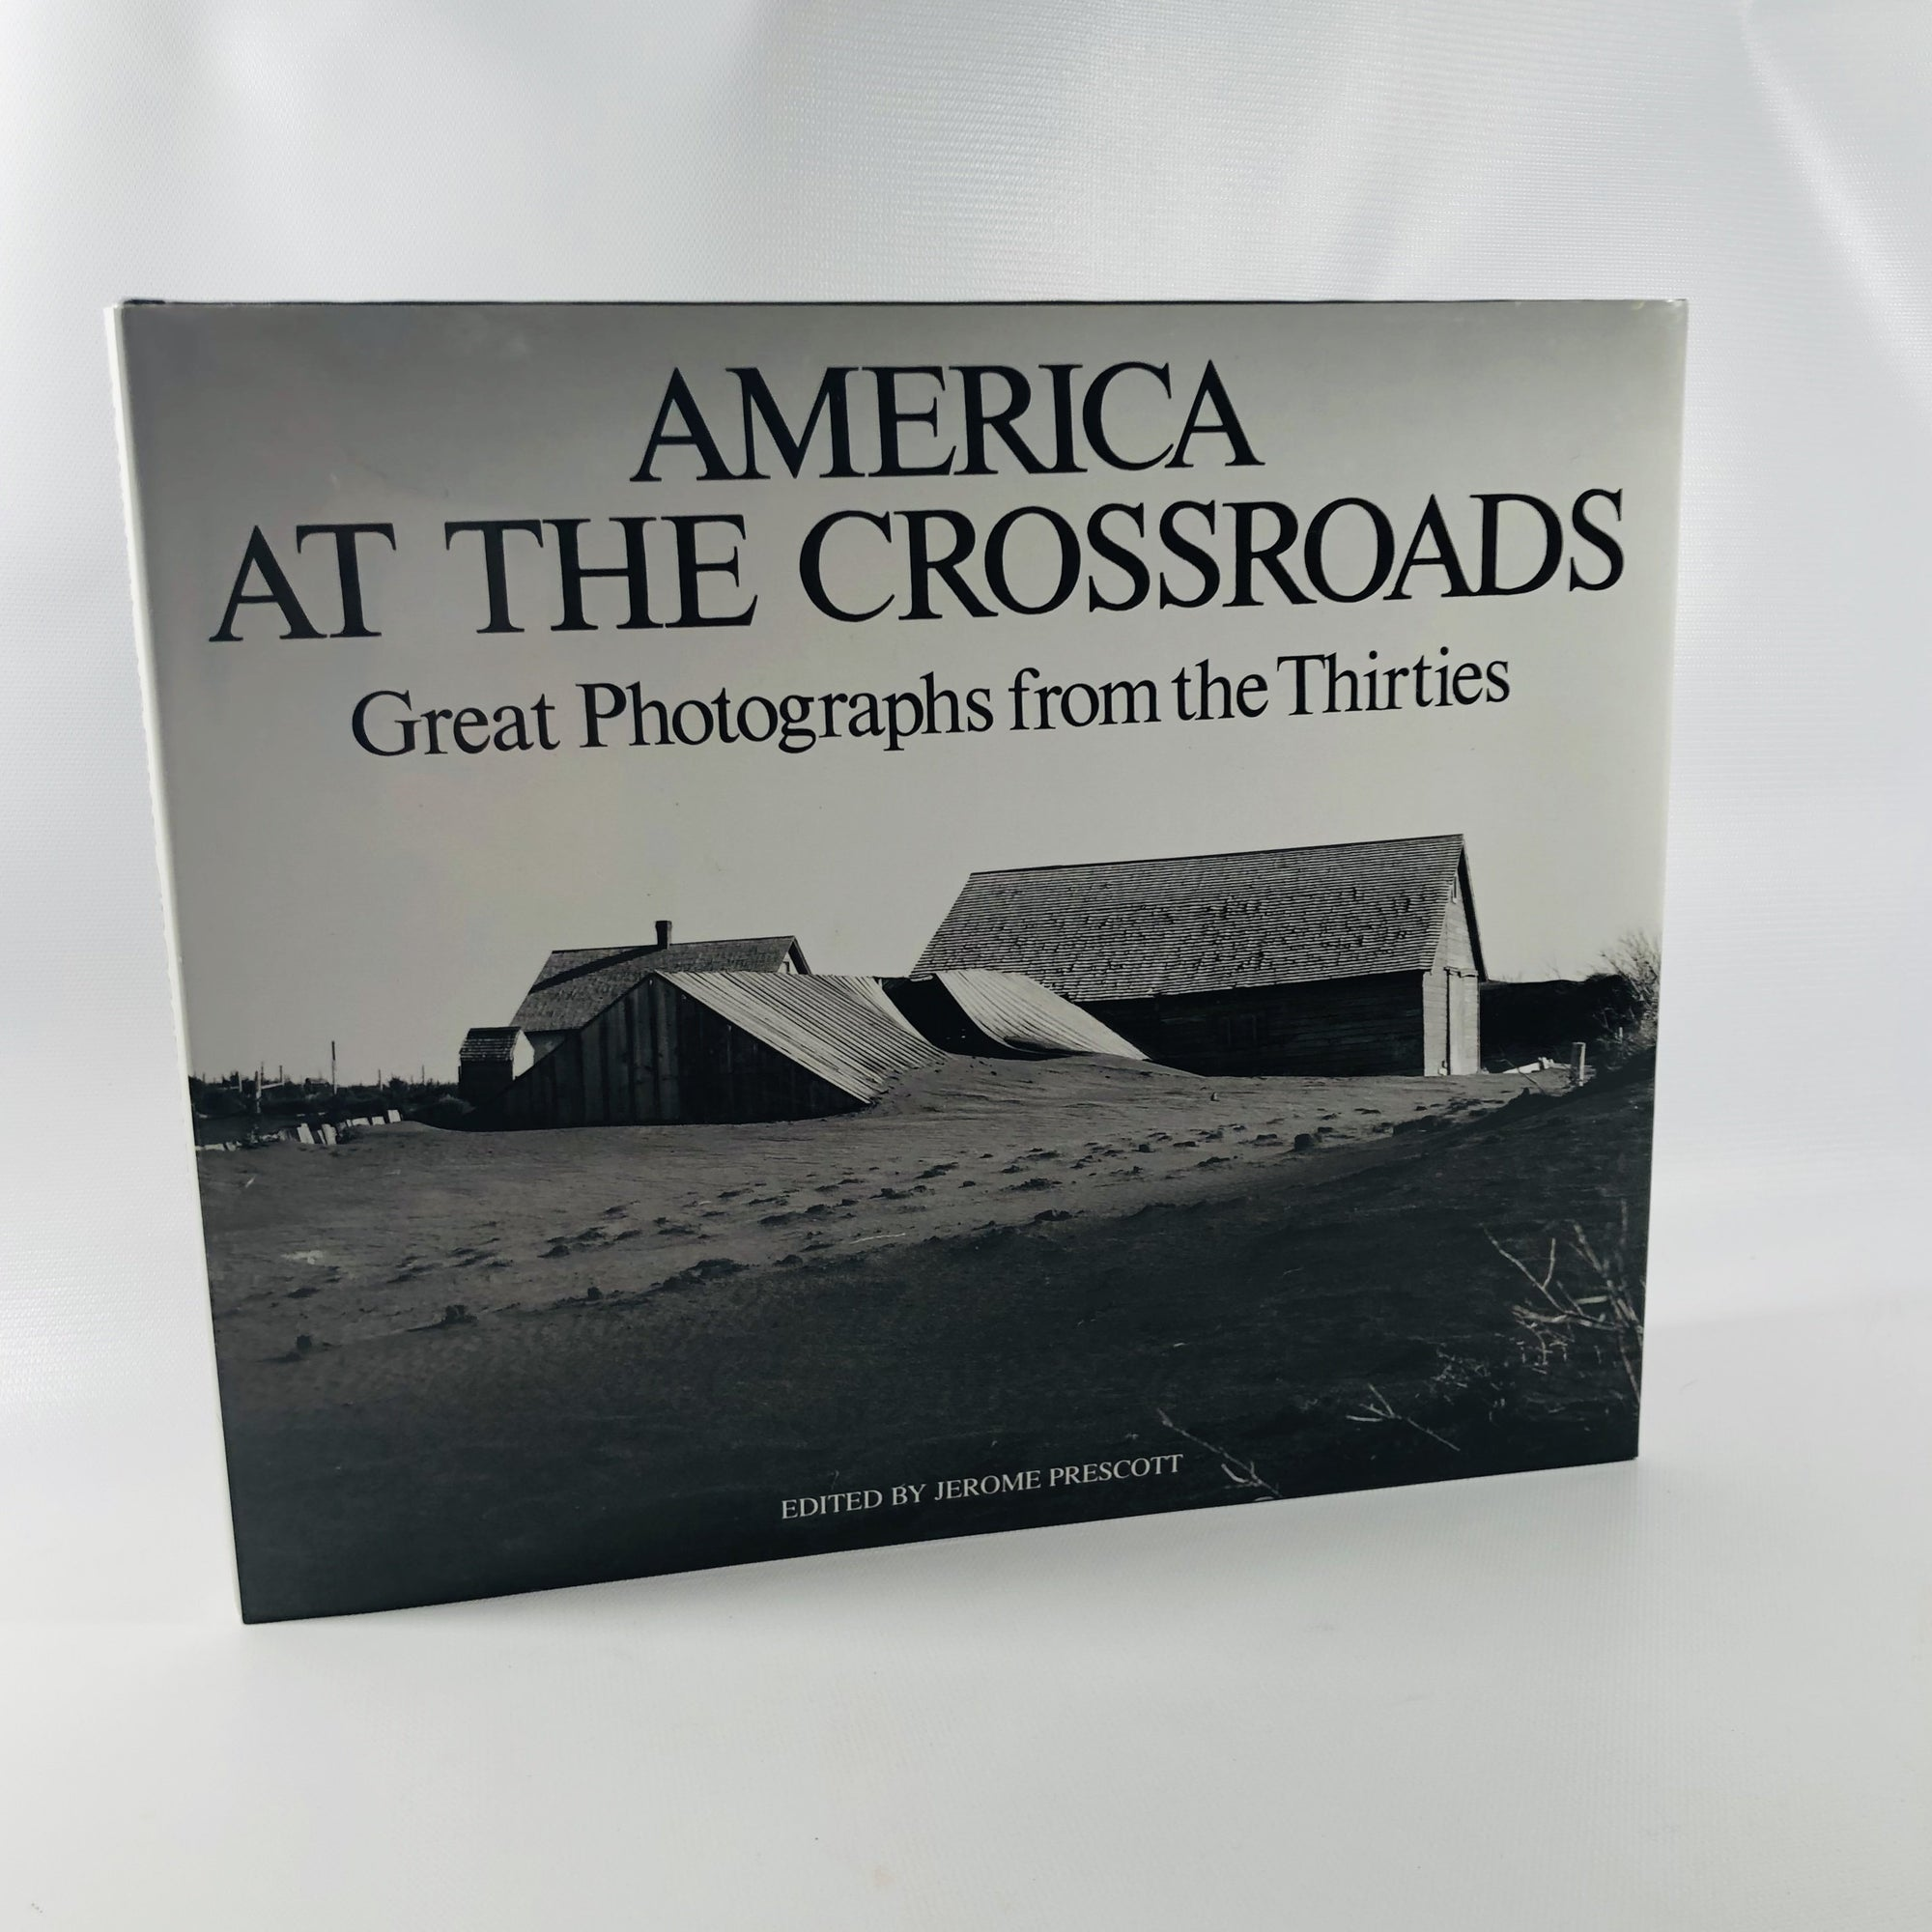 America at the Crossroads Great Photographs from the Thirties Edited by Jerome Prescott 1995